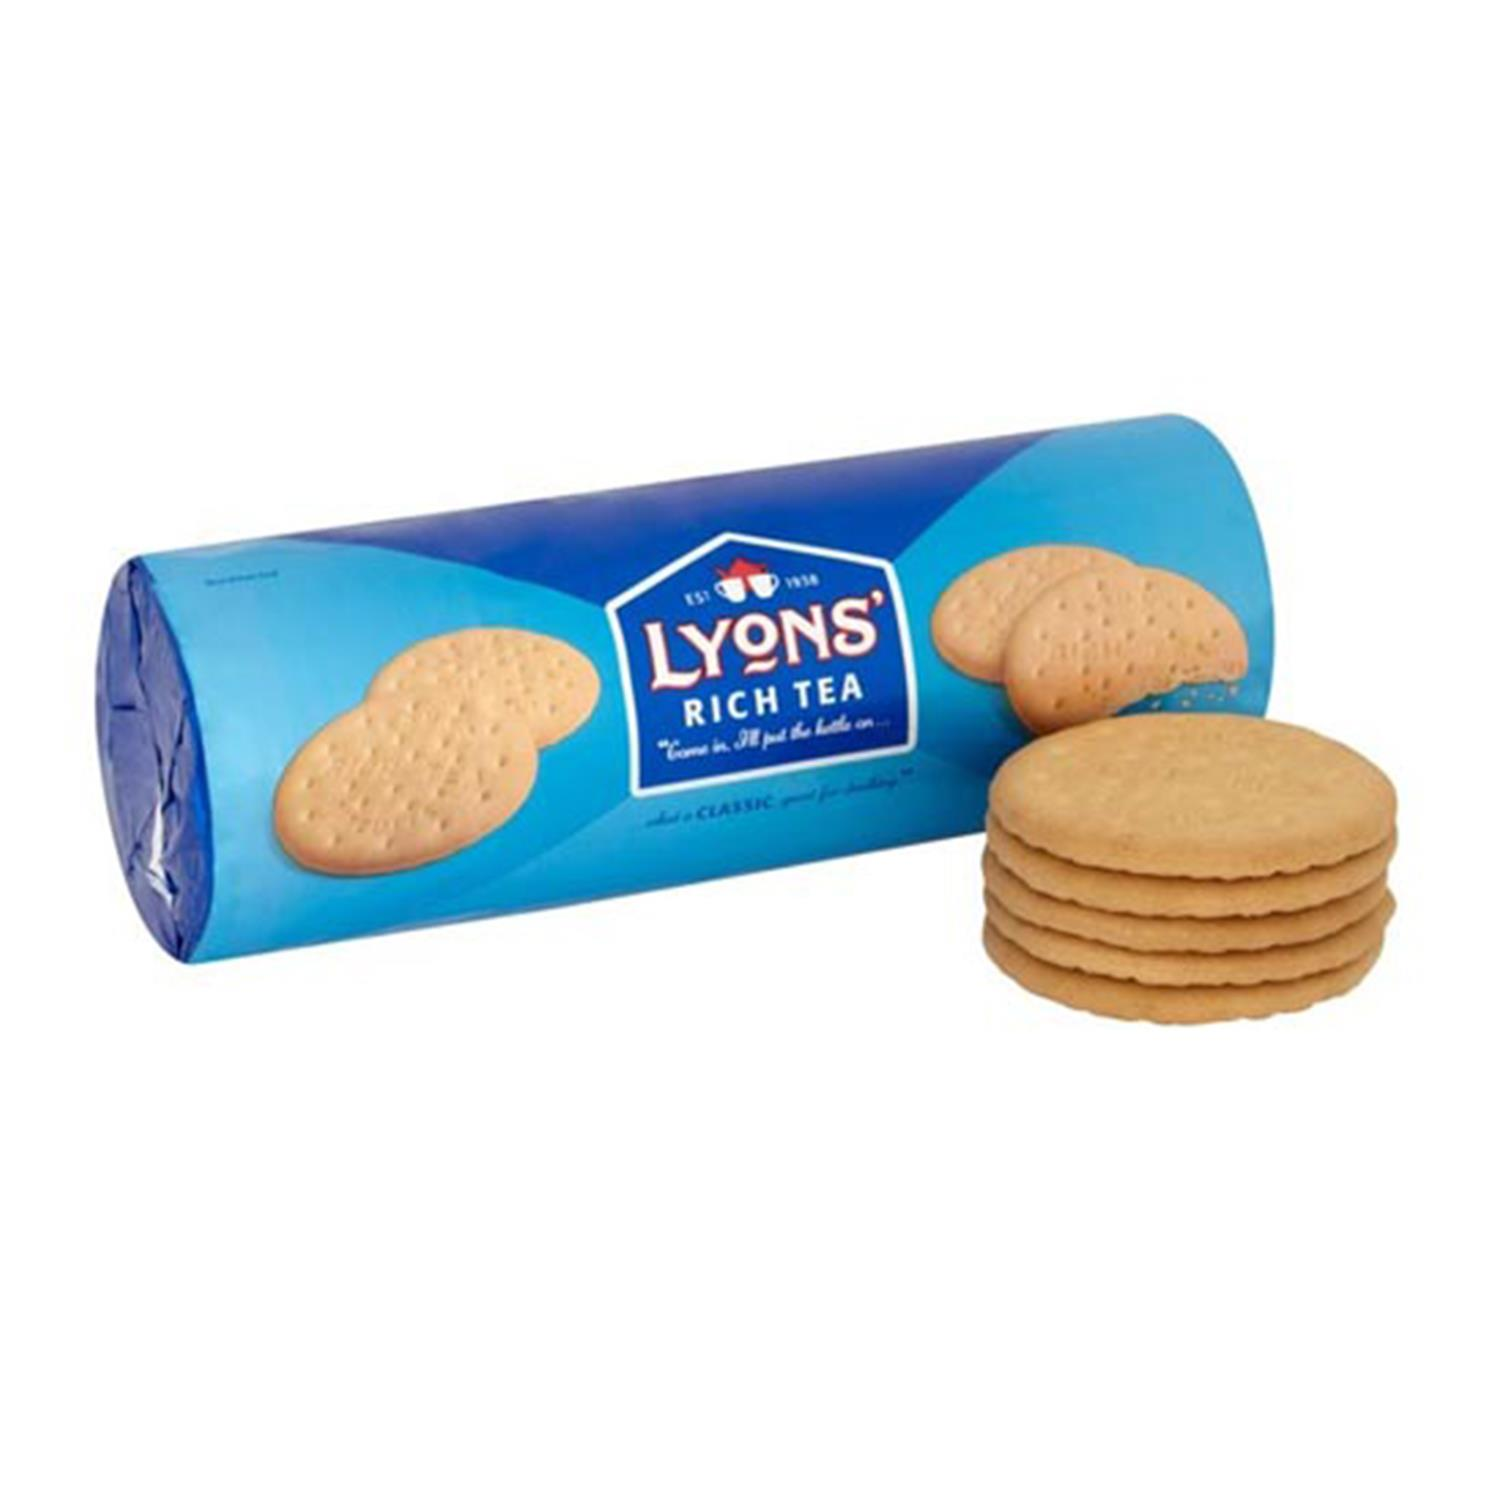 thumbnail 15 - Lyons Rich Tea Biscuits 300g, Great for a morning or afternoon snack